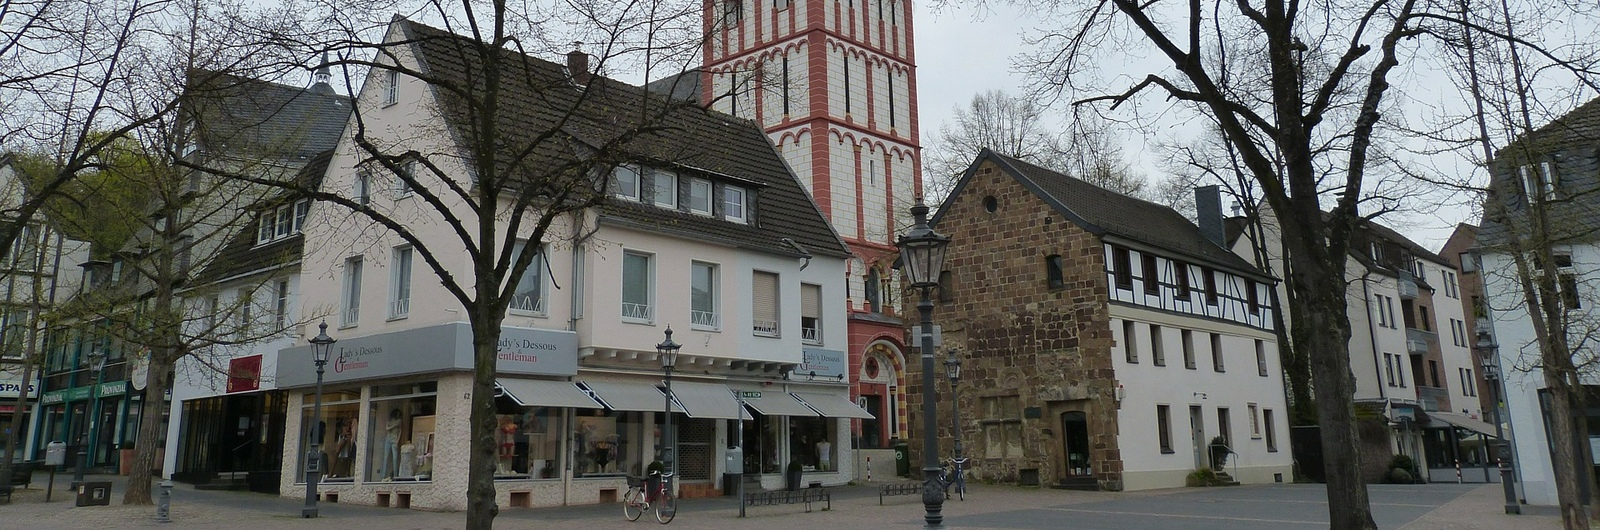 siegburg city header